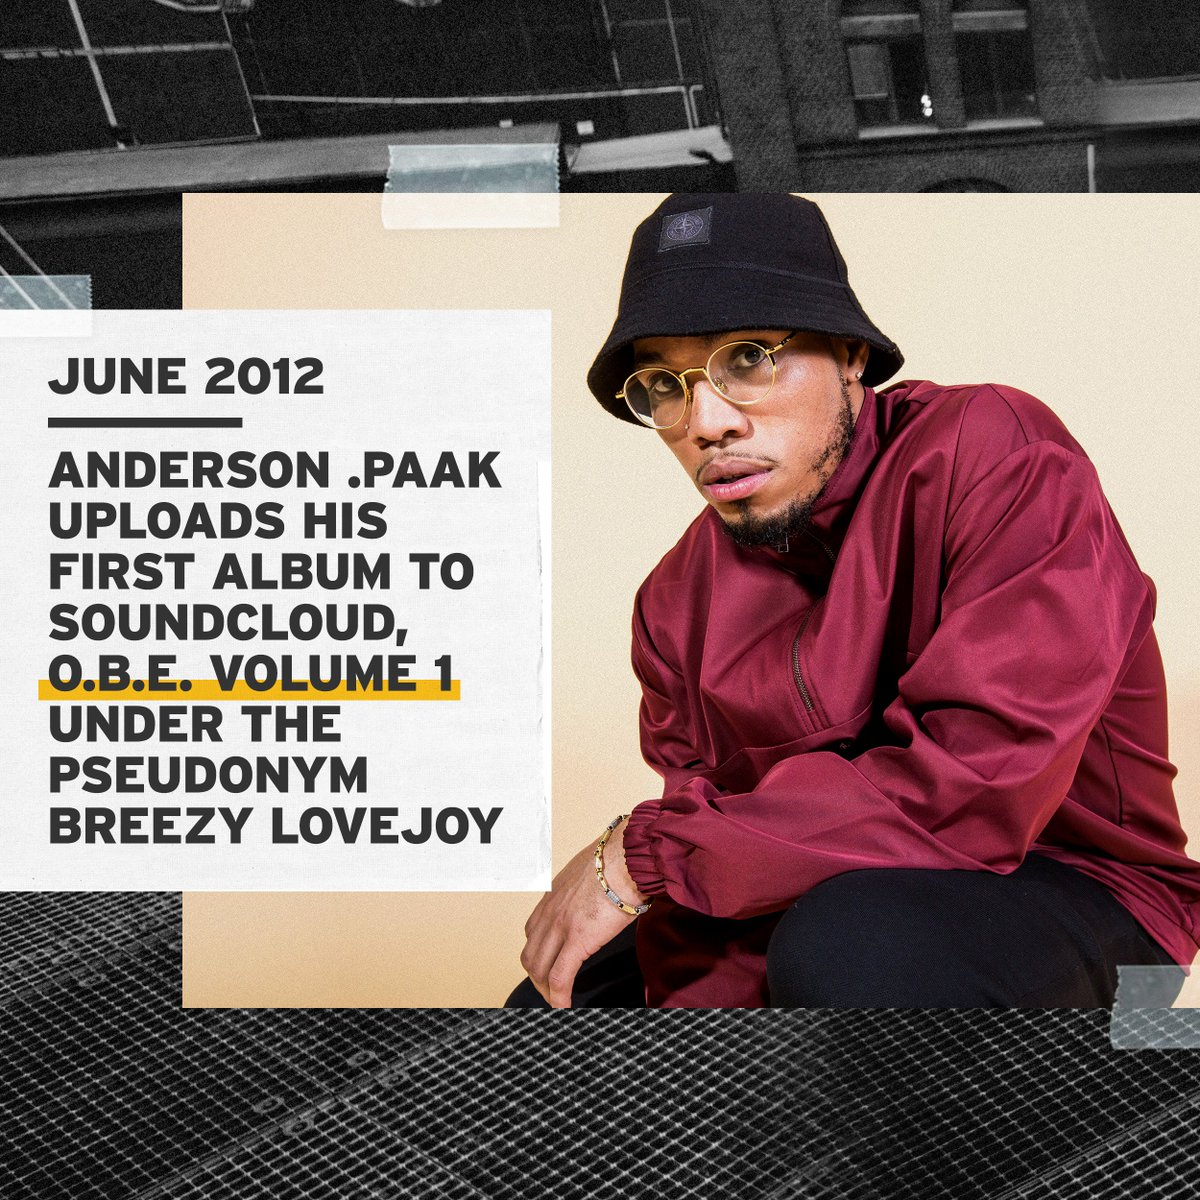 Music's biggest night is here and we are celebrating @AndersonPaak. He got his start on SoundCloud releasing projects under the name Breezy Lovejoy and is now nominated for Best Rap Performance - do you think he'll take home a #GRAMMYs tonight? #SCFIRST http://bit.ly/2UIVdDS